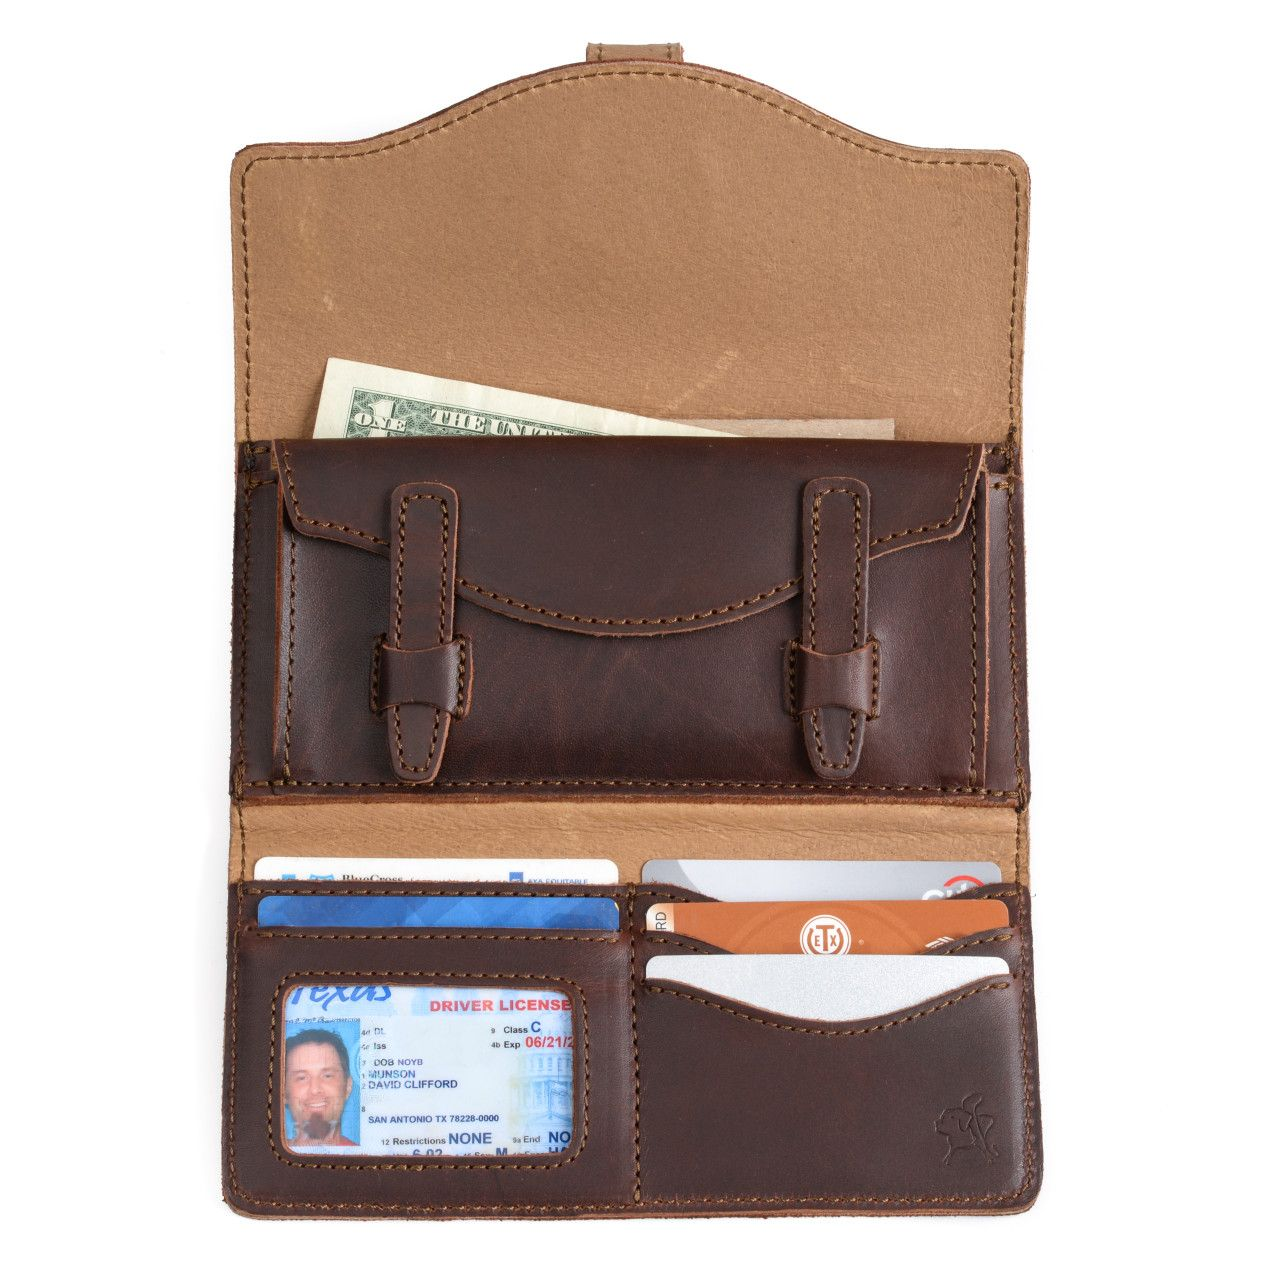 long trifold leather wallet in chestnut leather with full content: money, card, driver's license